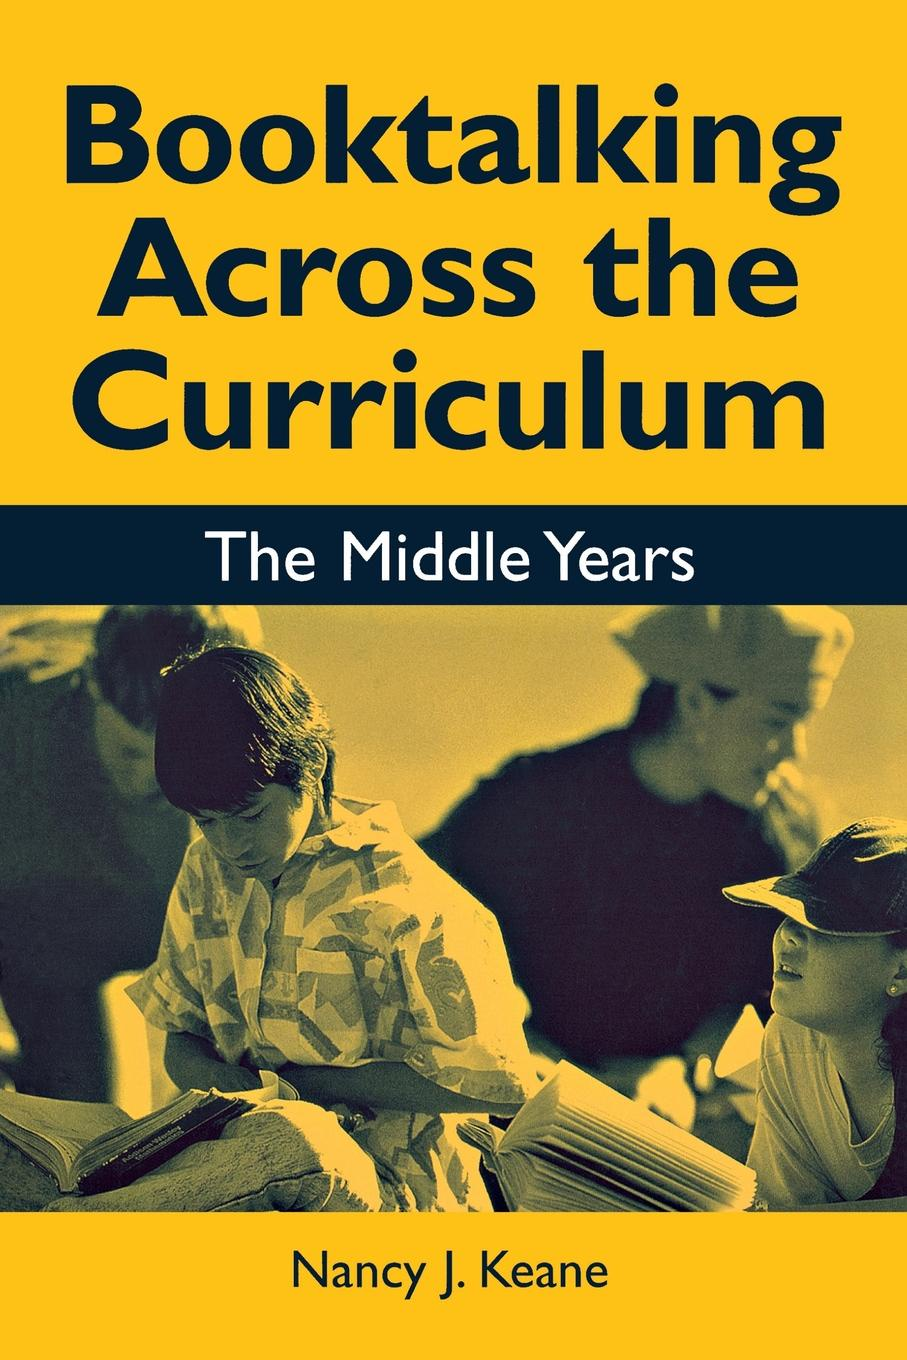 Nancy J. Keane Booktalking Across the Curriculum. Middle Years denis lawrence middlesbrough man part two the middle years